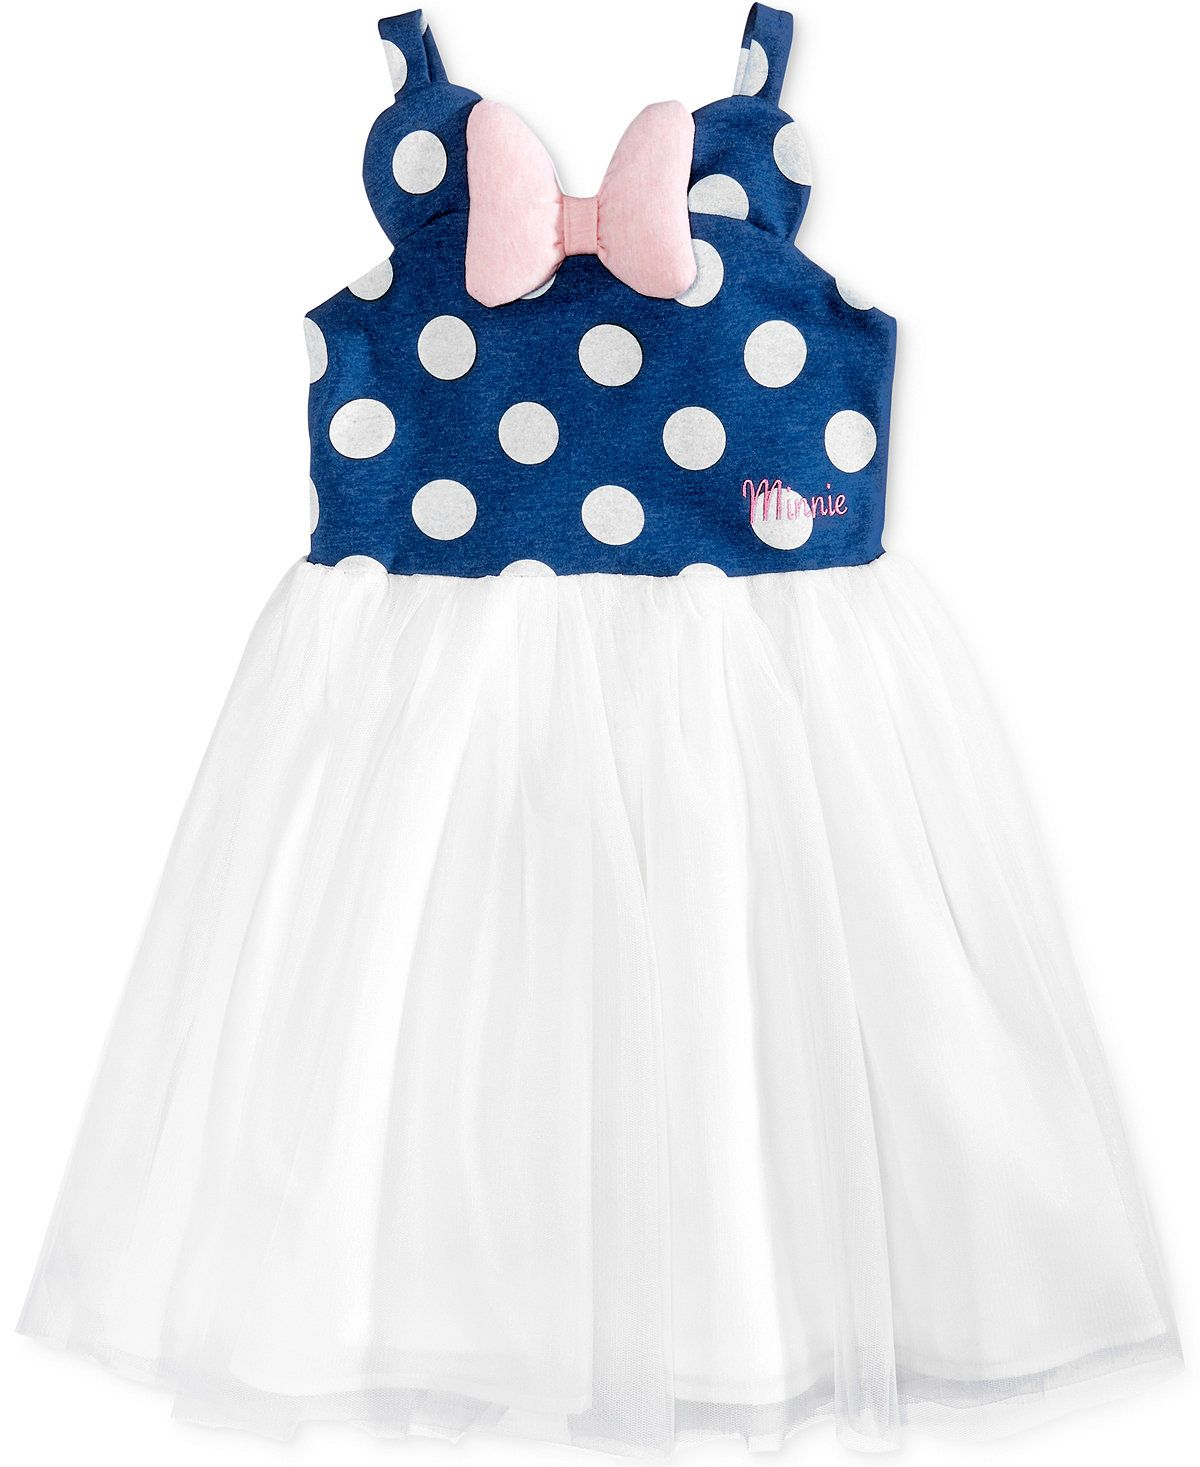 549ce2c3d88c Disney's® Minnie Mouse Polka Dot & Mesh Dress, Toddler & Little Girls  (2T-6X) - Girls 2-6X - Kids & Baby - Macy's